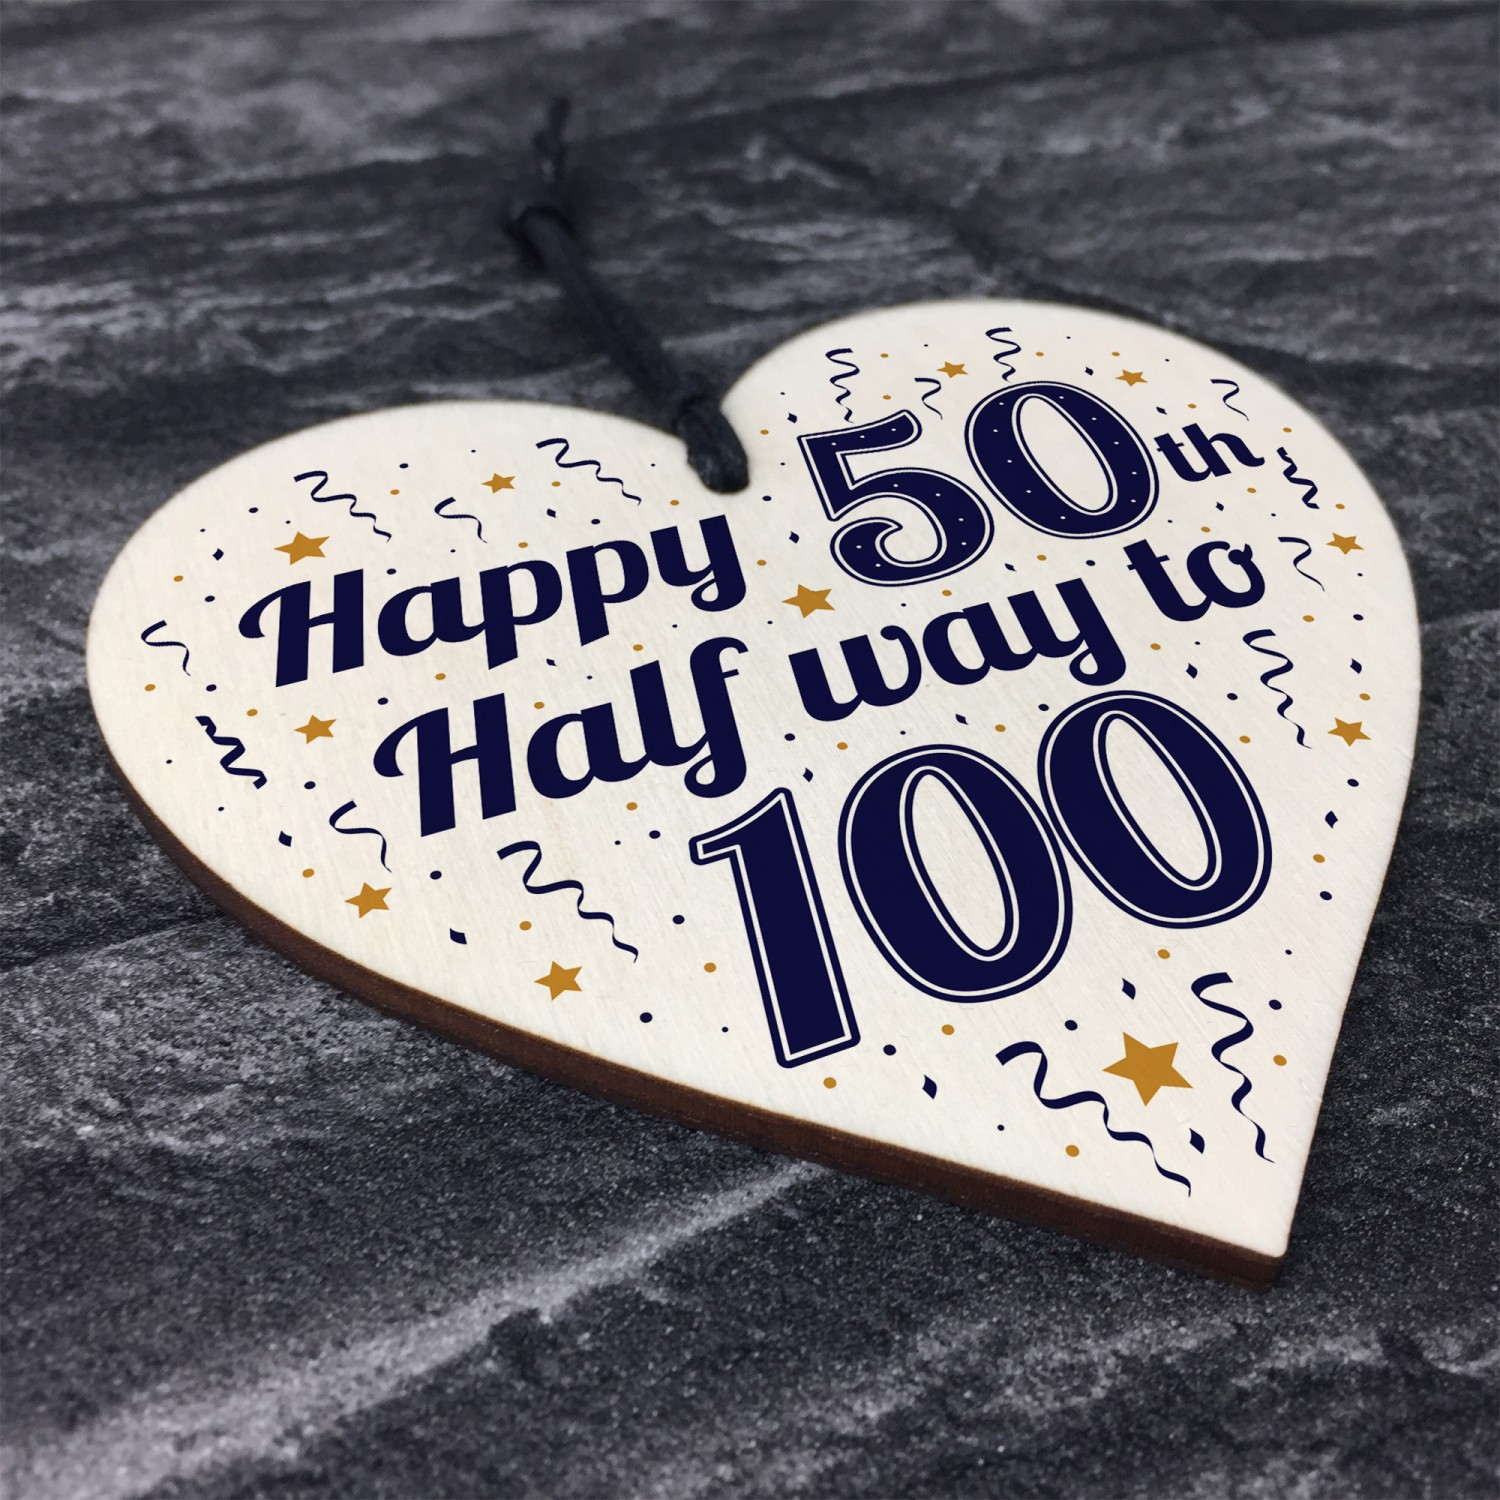 Funny Happy 50th Birthday Gift Present Wooden Heart Plaque